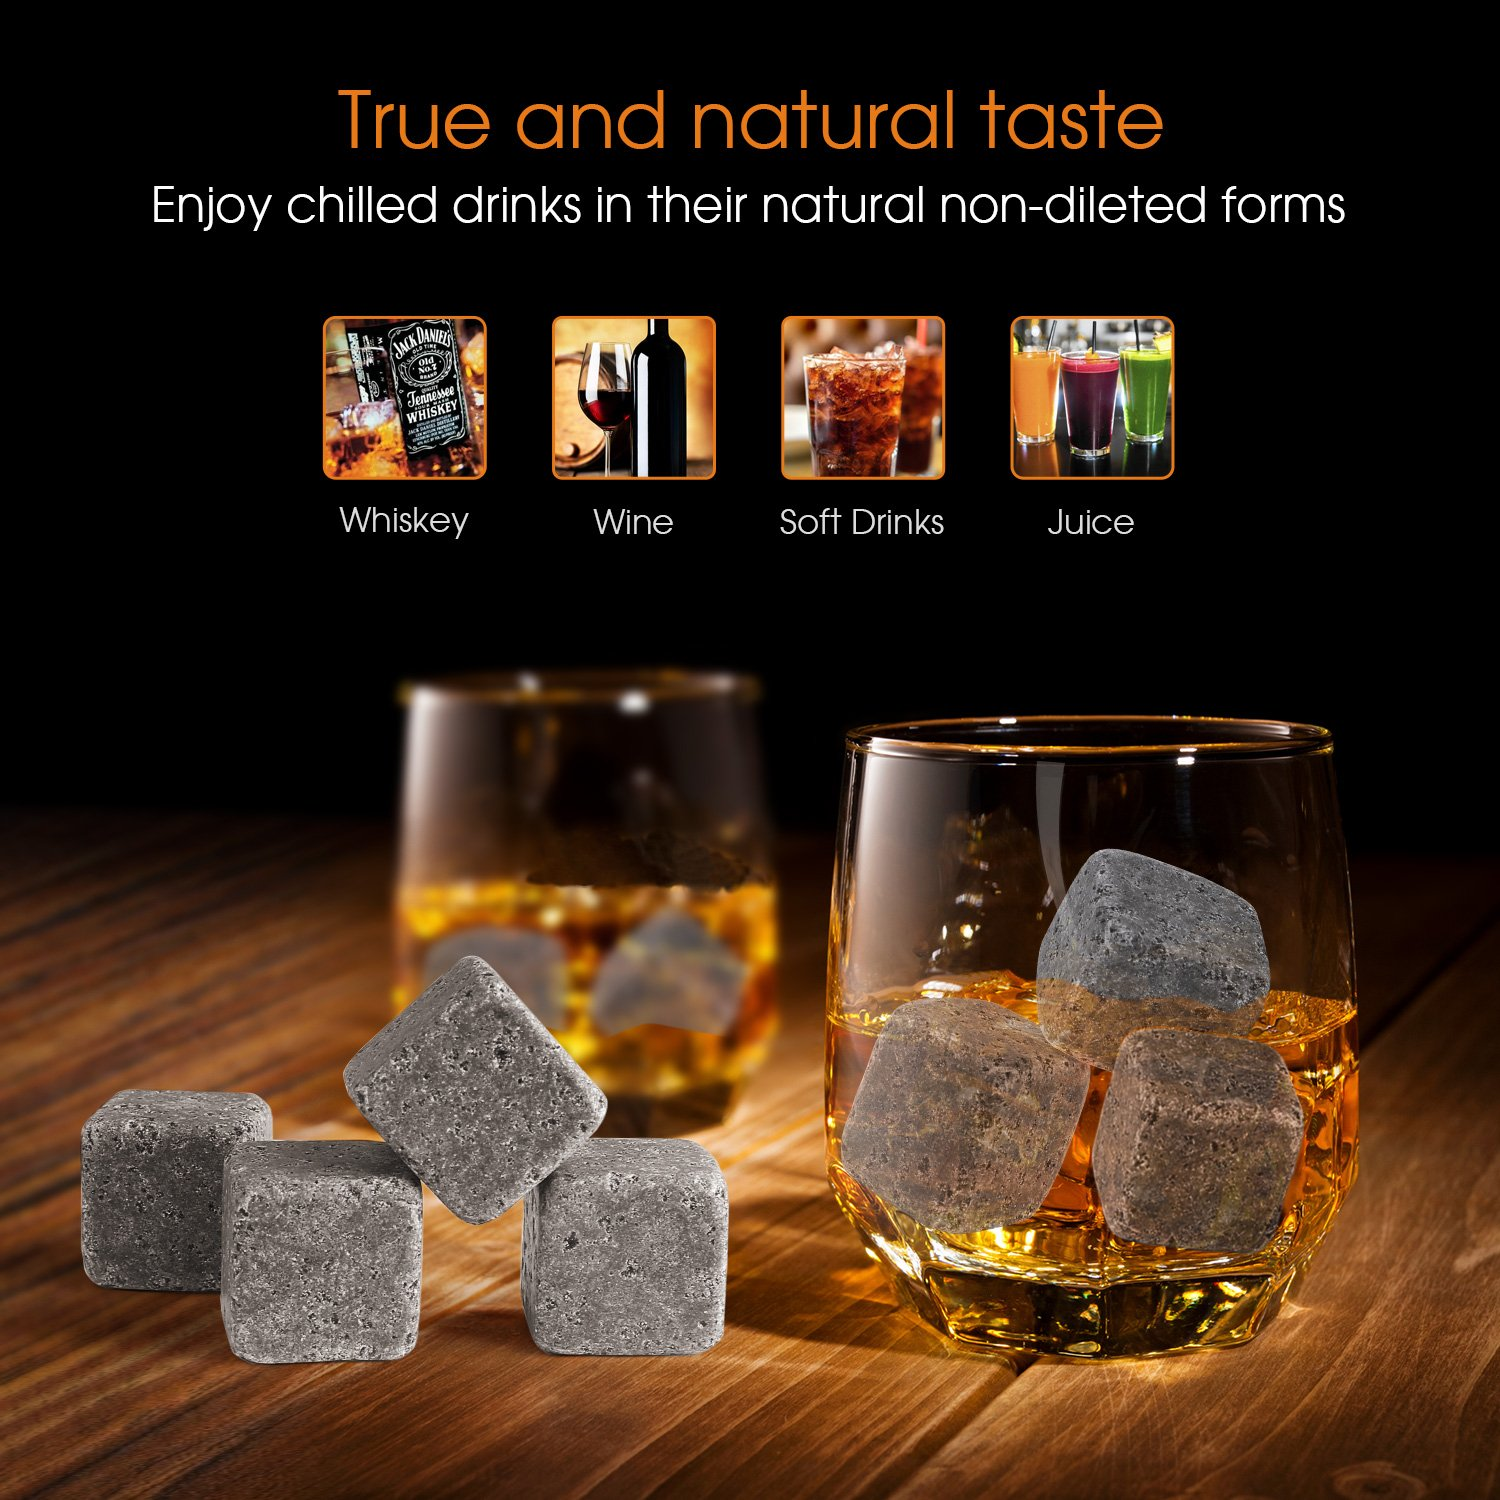 SAVFY/® 9 PCS Whisky Chilling Rocks Ice Stones Drinks Cooler Cubes Whiskey Scotch on the Rocks Granite with a Muslin Pouch